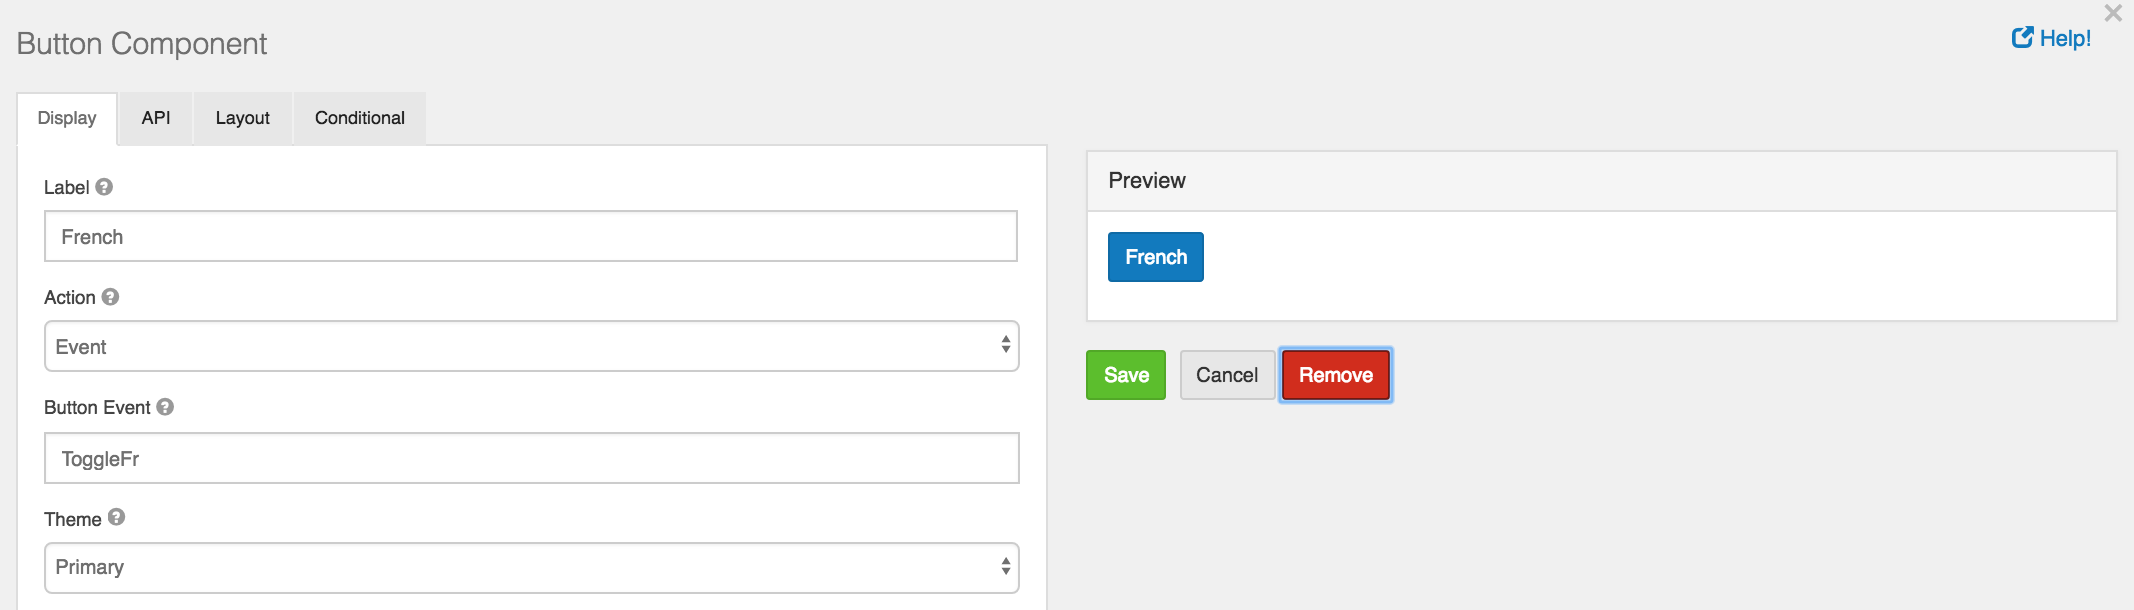 BOOTSTRAP TOGGLE BUTTON CHANGE EVENT - Form io Help   Tutorials